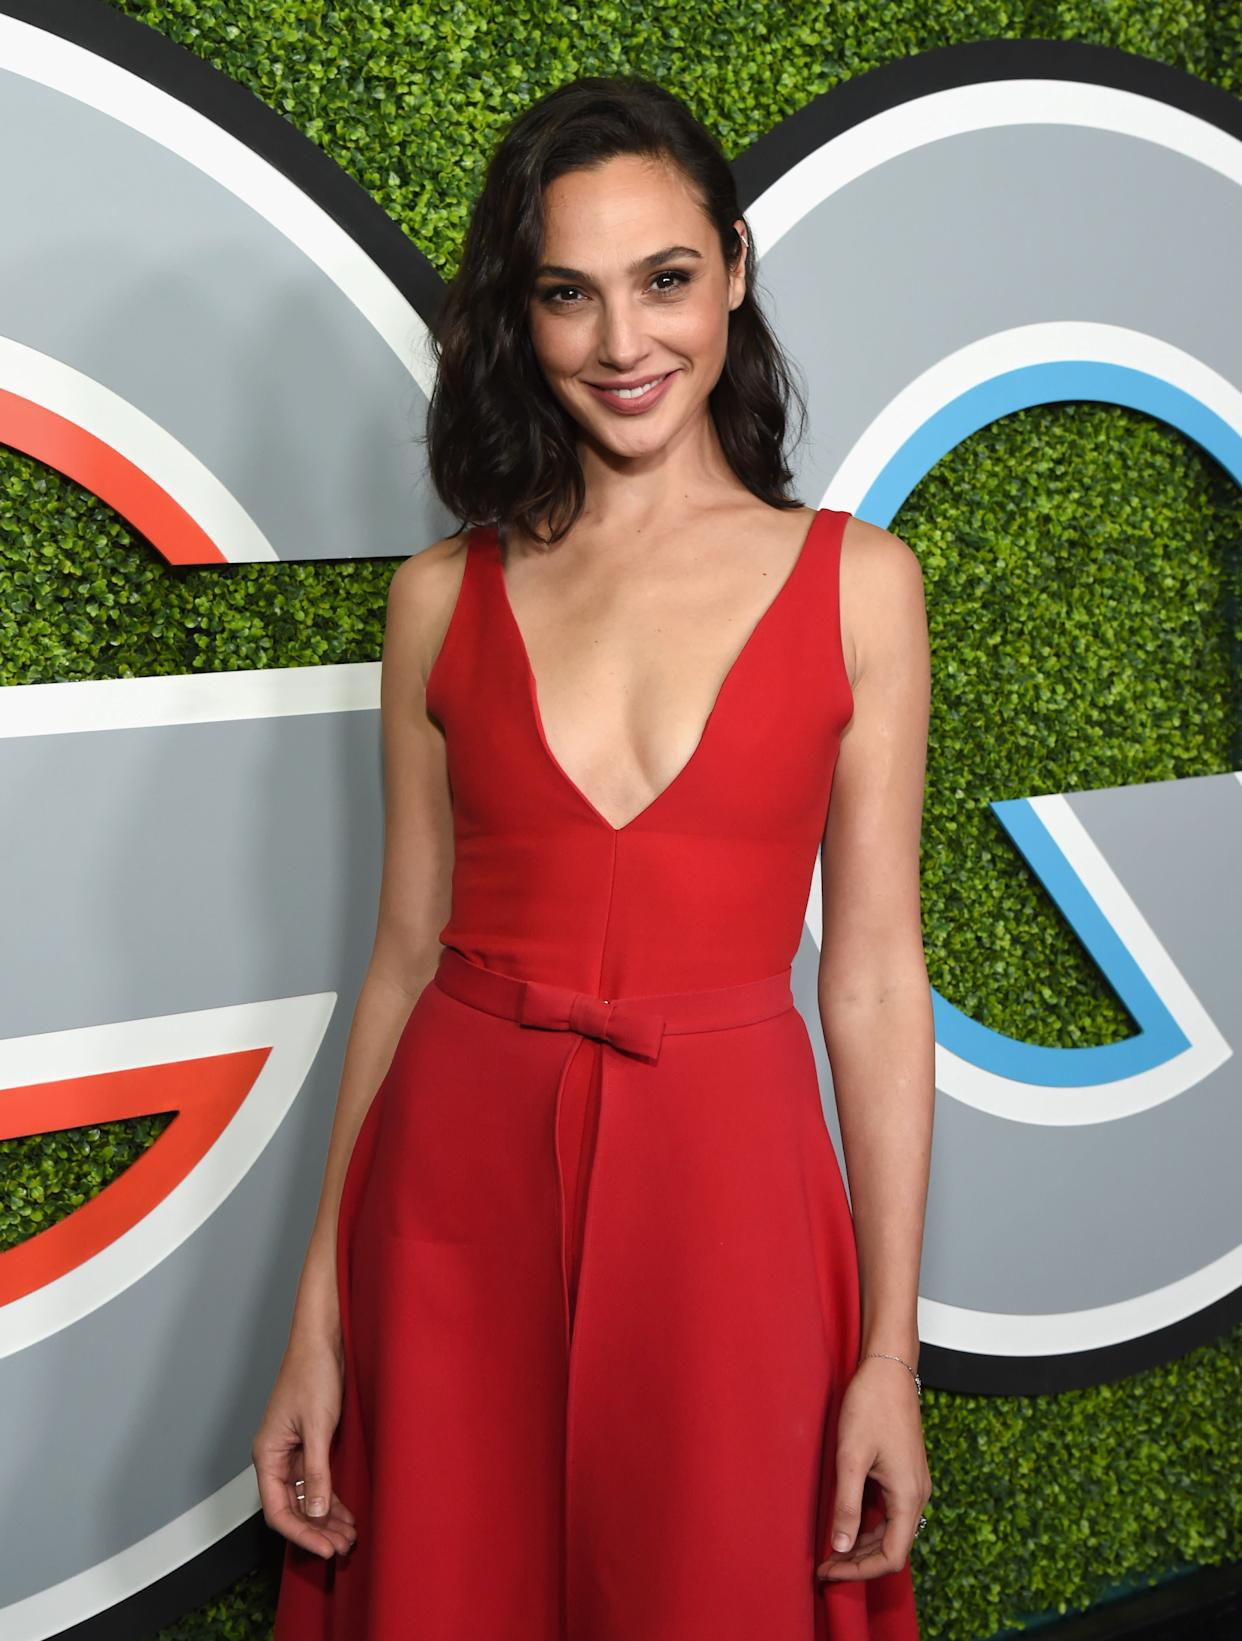 LOS ANGELES, CA - DECEMBER 07: Gal Gadot attends the 2017 GQ Men of the Year party at Chateau Marmont on December 7, 2017 in Los Angeles, California. (Photo by Michael Kovac/Getty Images for GQ)